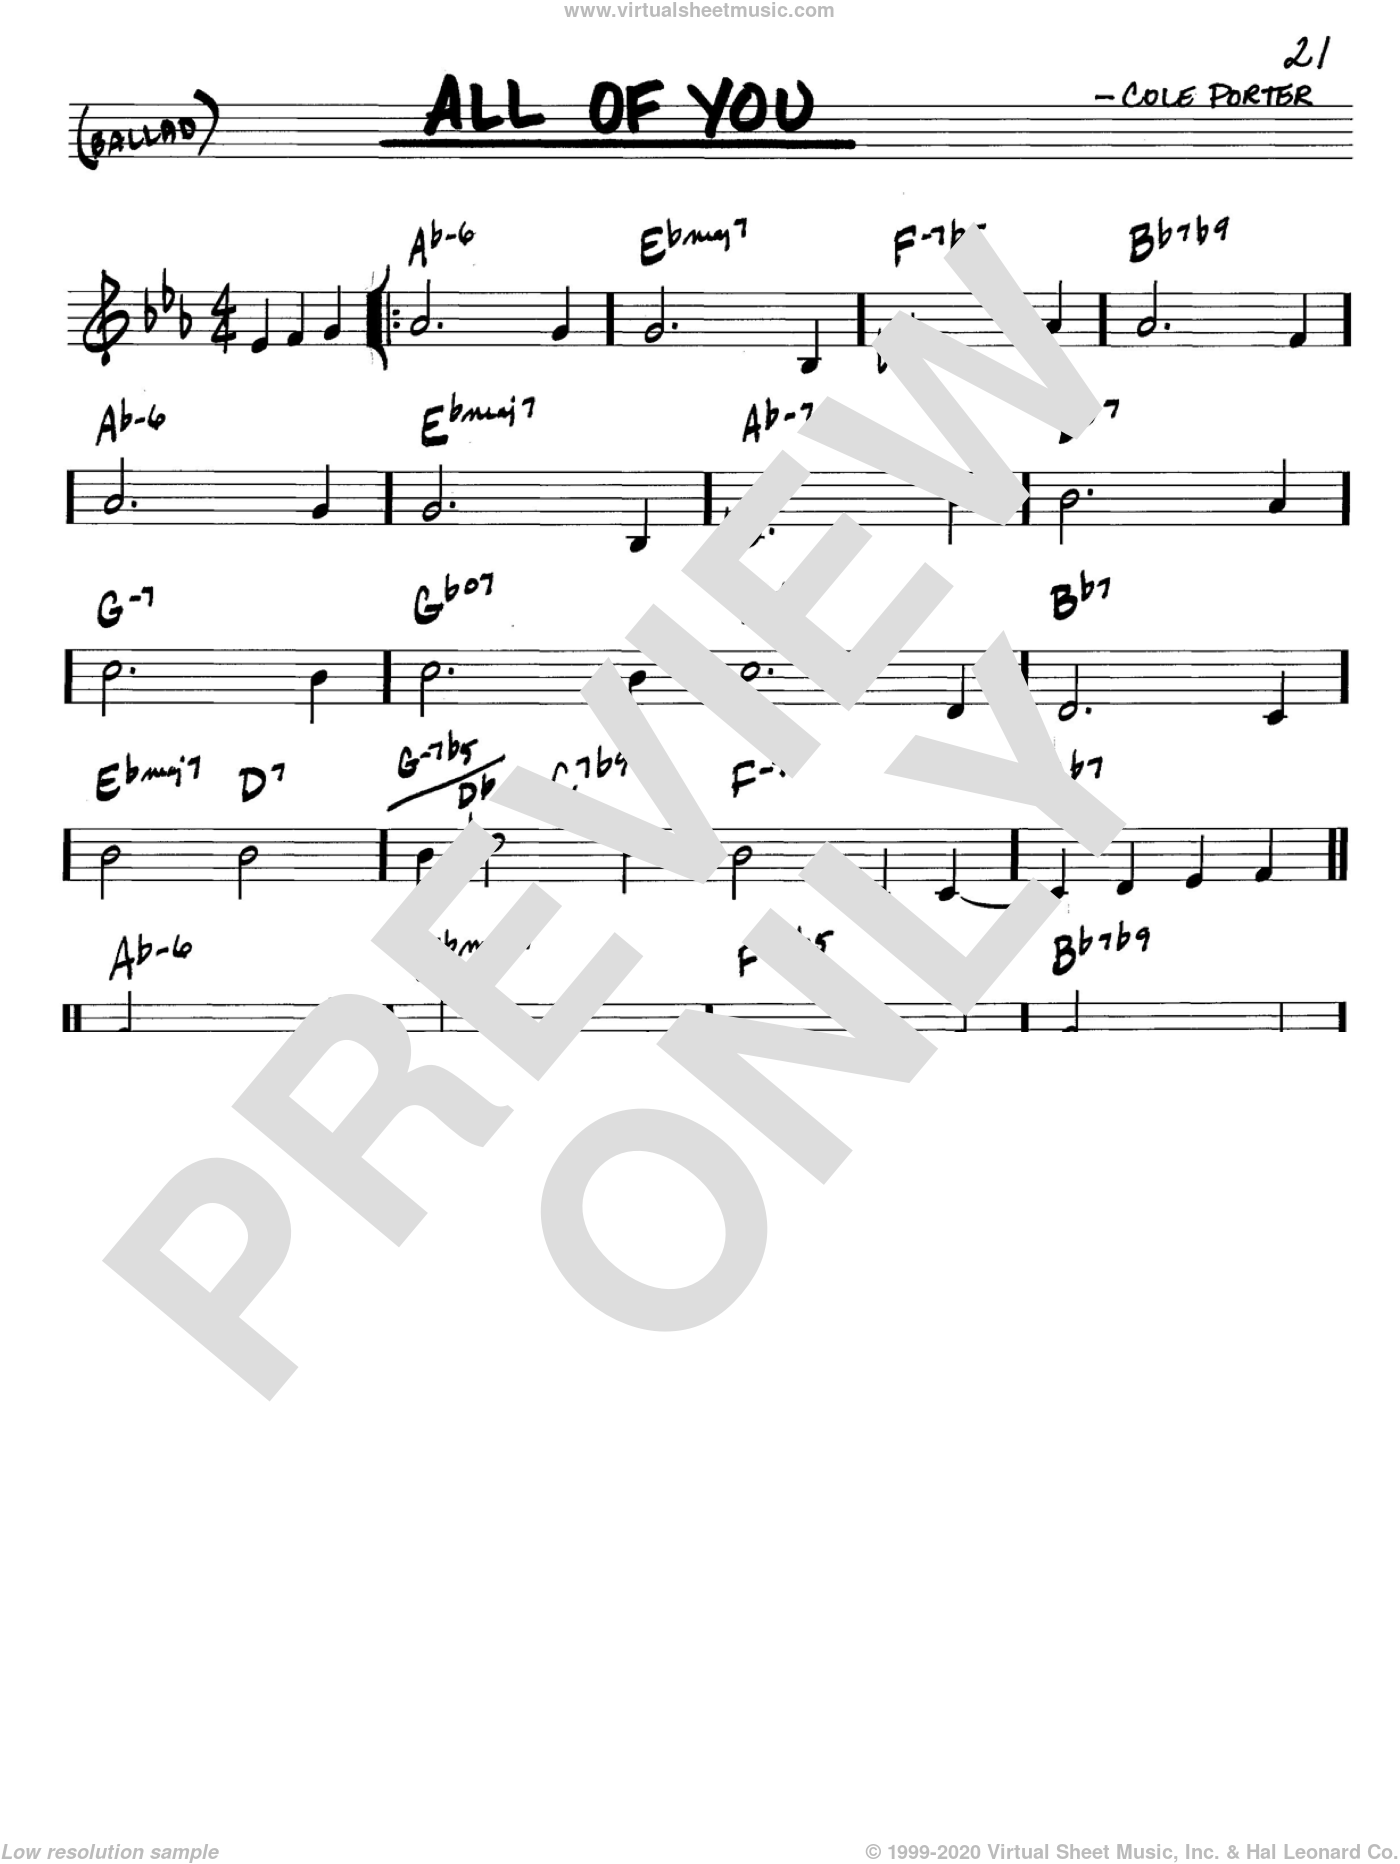 All Of You sheet music for voice and other instruments (C) by Cole Porter. Score Image Preview.